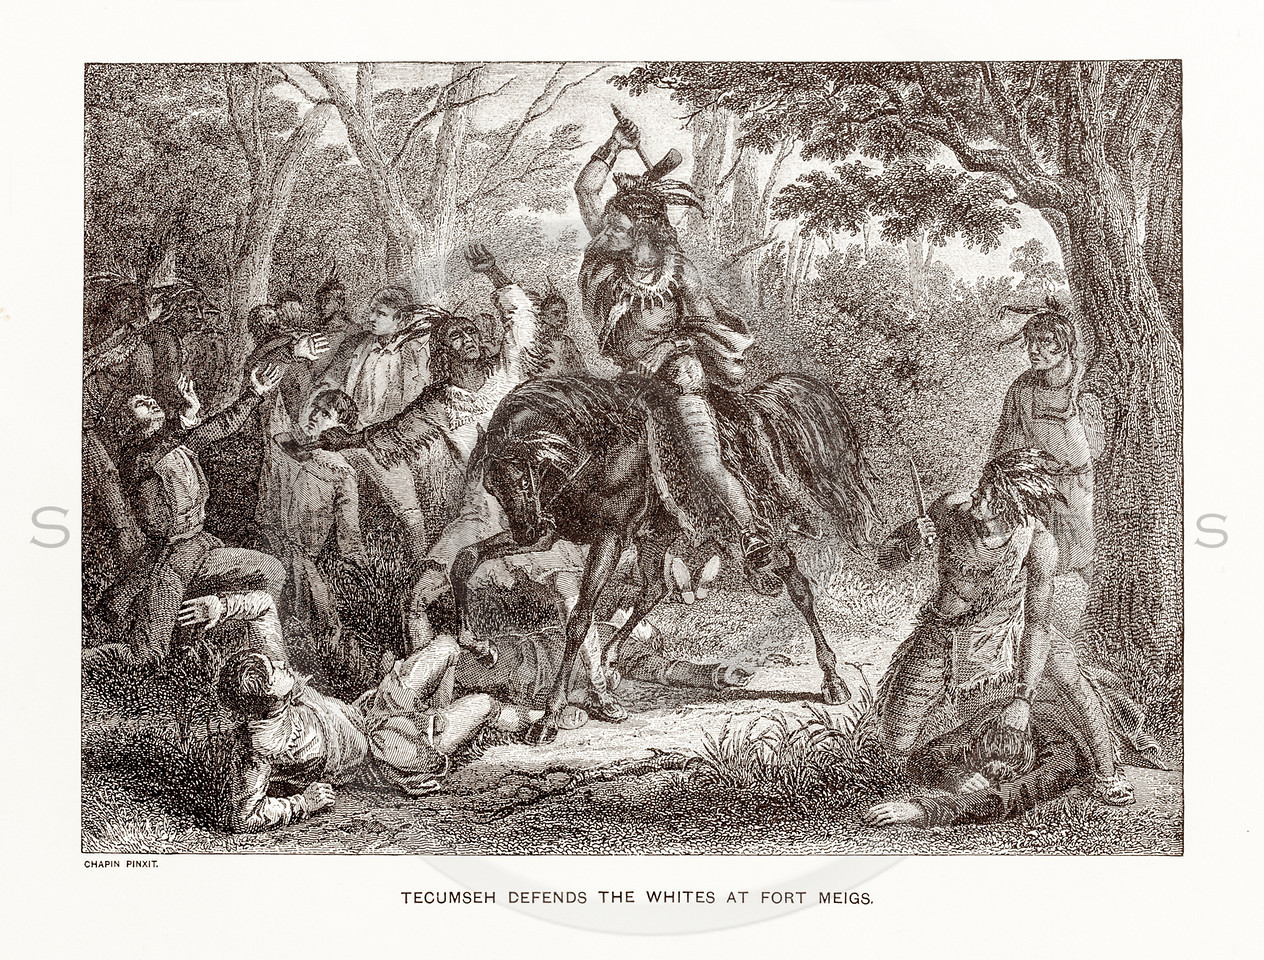 Vintage 1800s Sepia Illustration of Tecumseh.  The natural patina, age-toning, imperfections, and old paper antiquing of this vintage 19th century illustration are preserved in this image.